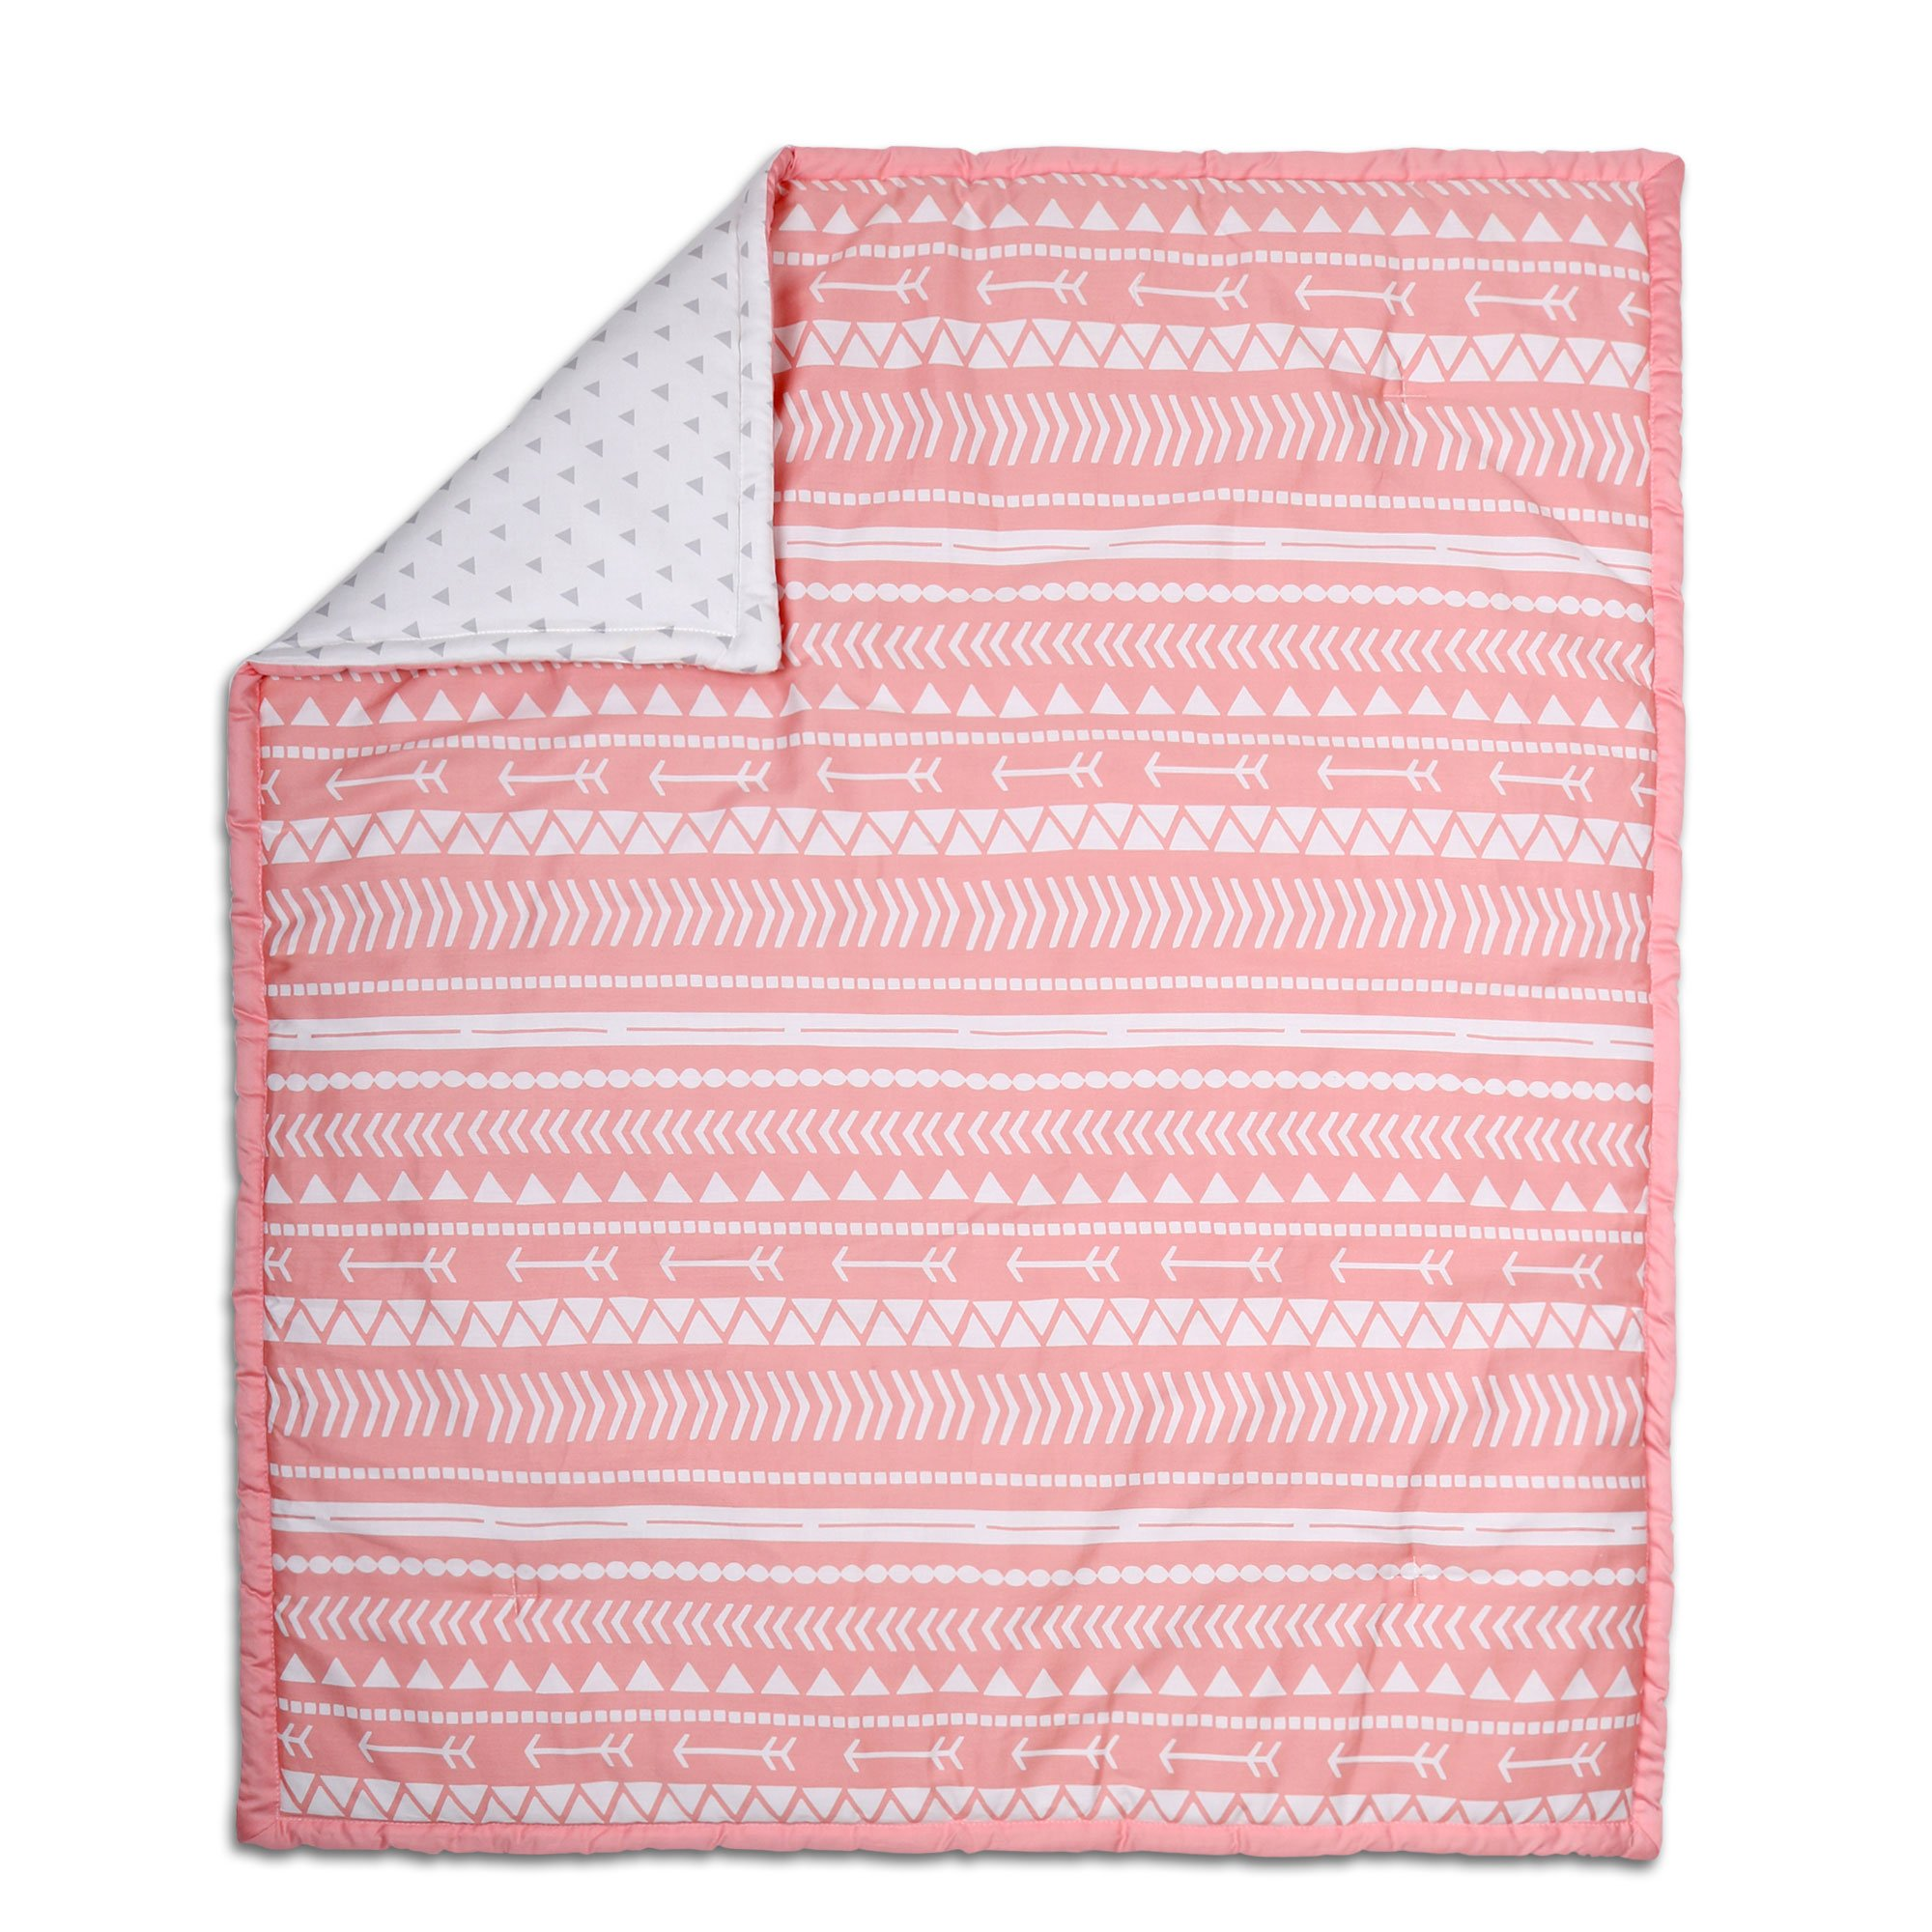 Coral Pink Tribal Print Reversible 100% Cotton Crib Quilt by The Peanut Shell